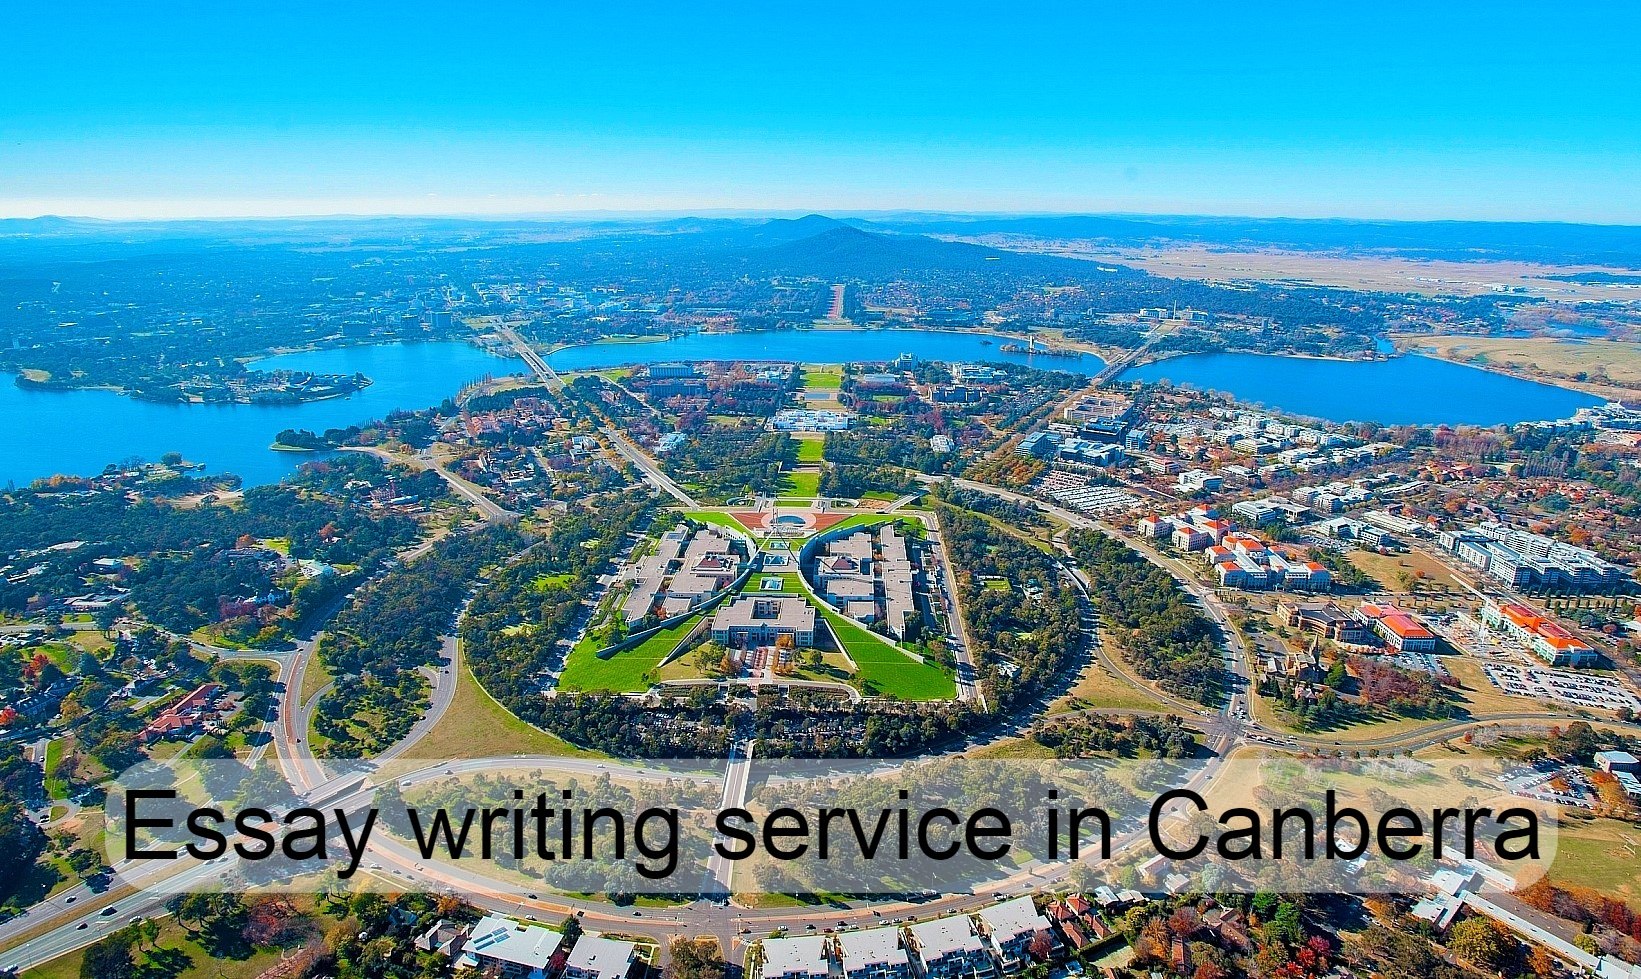 Essay writing service in Canberra